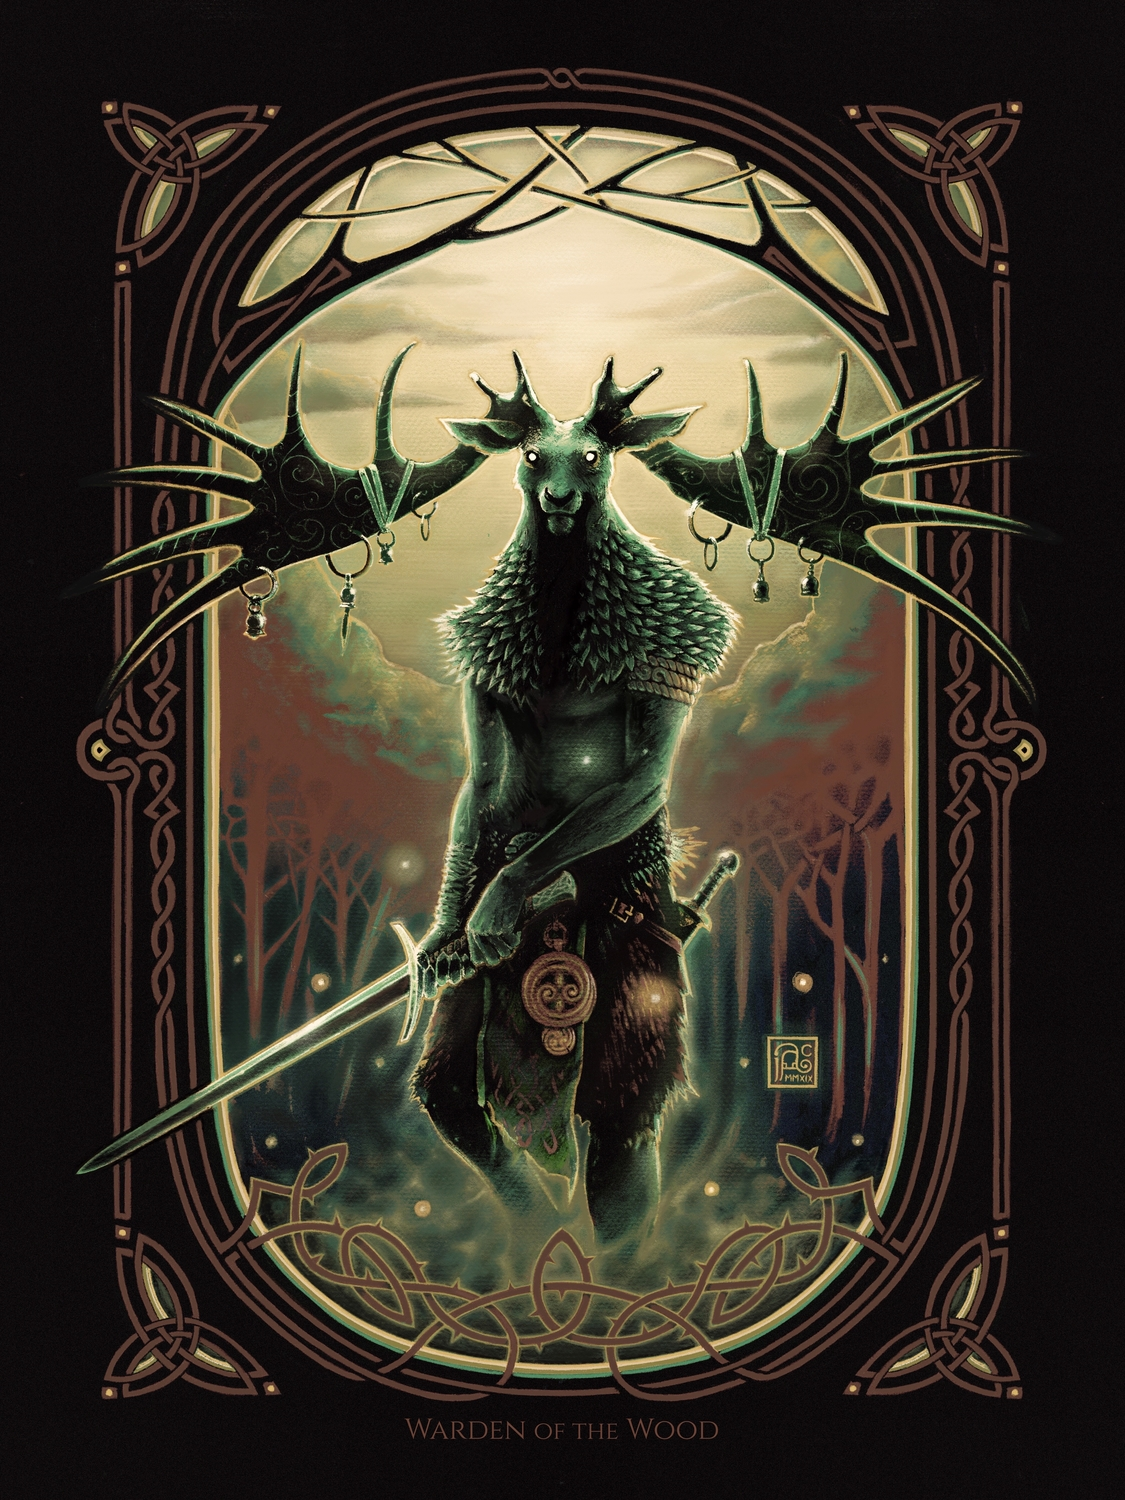 Warden of the Wood Artwork by James Adam Cartwright